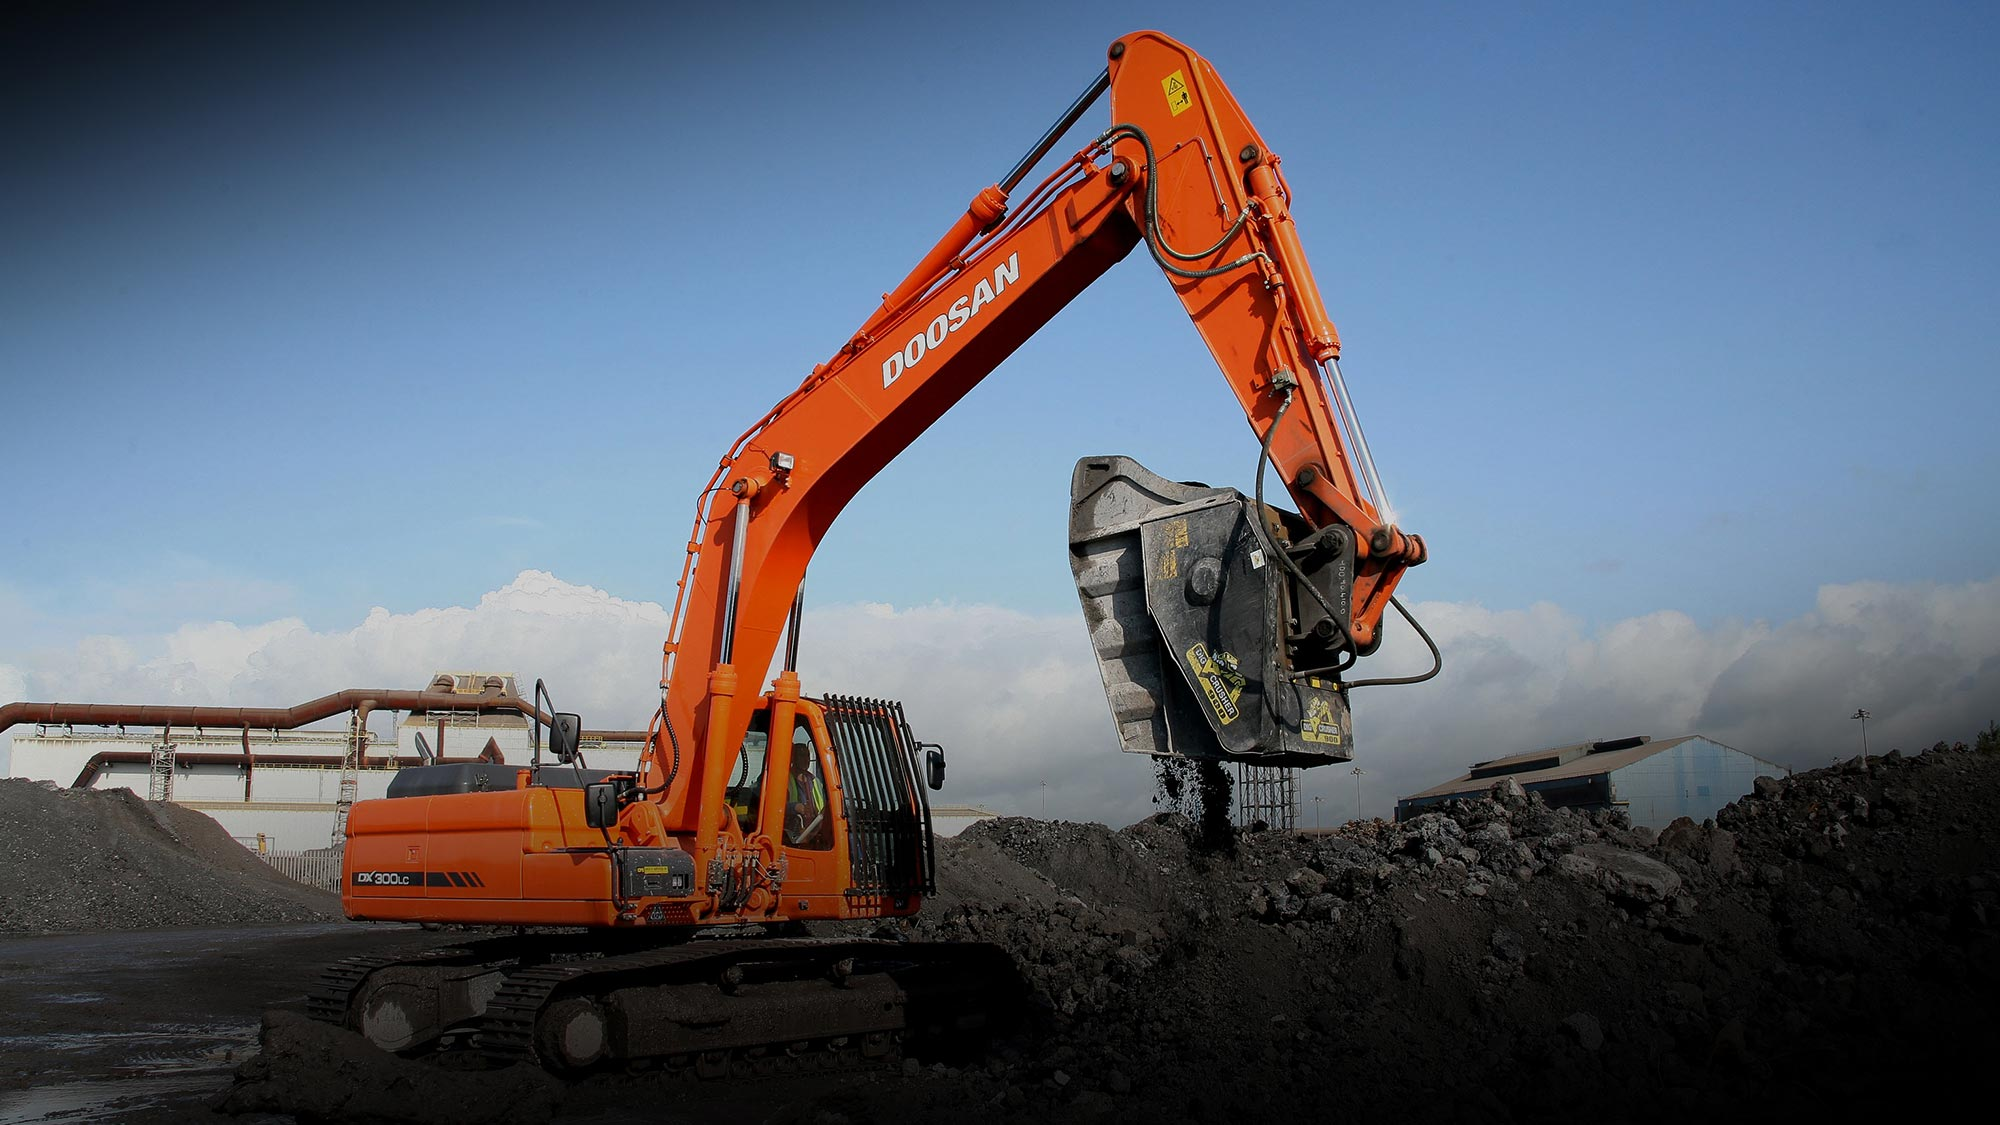 Suppliers of Doosan and Gehl Manufacturing Equipment